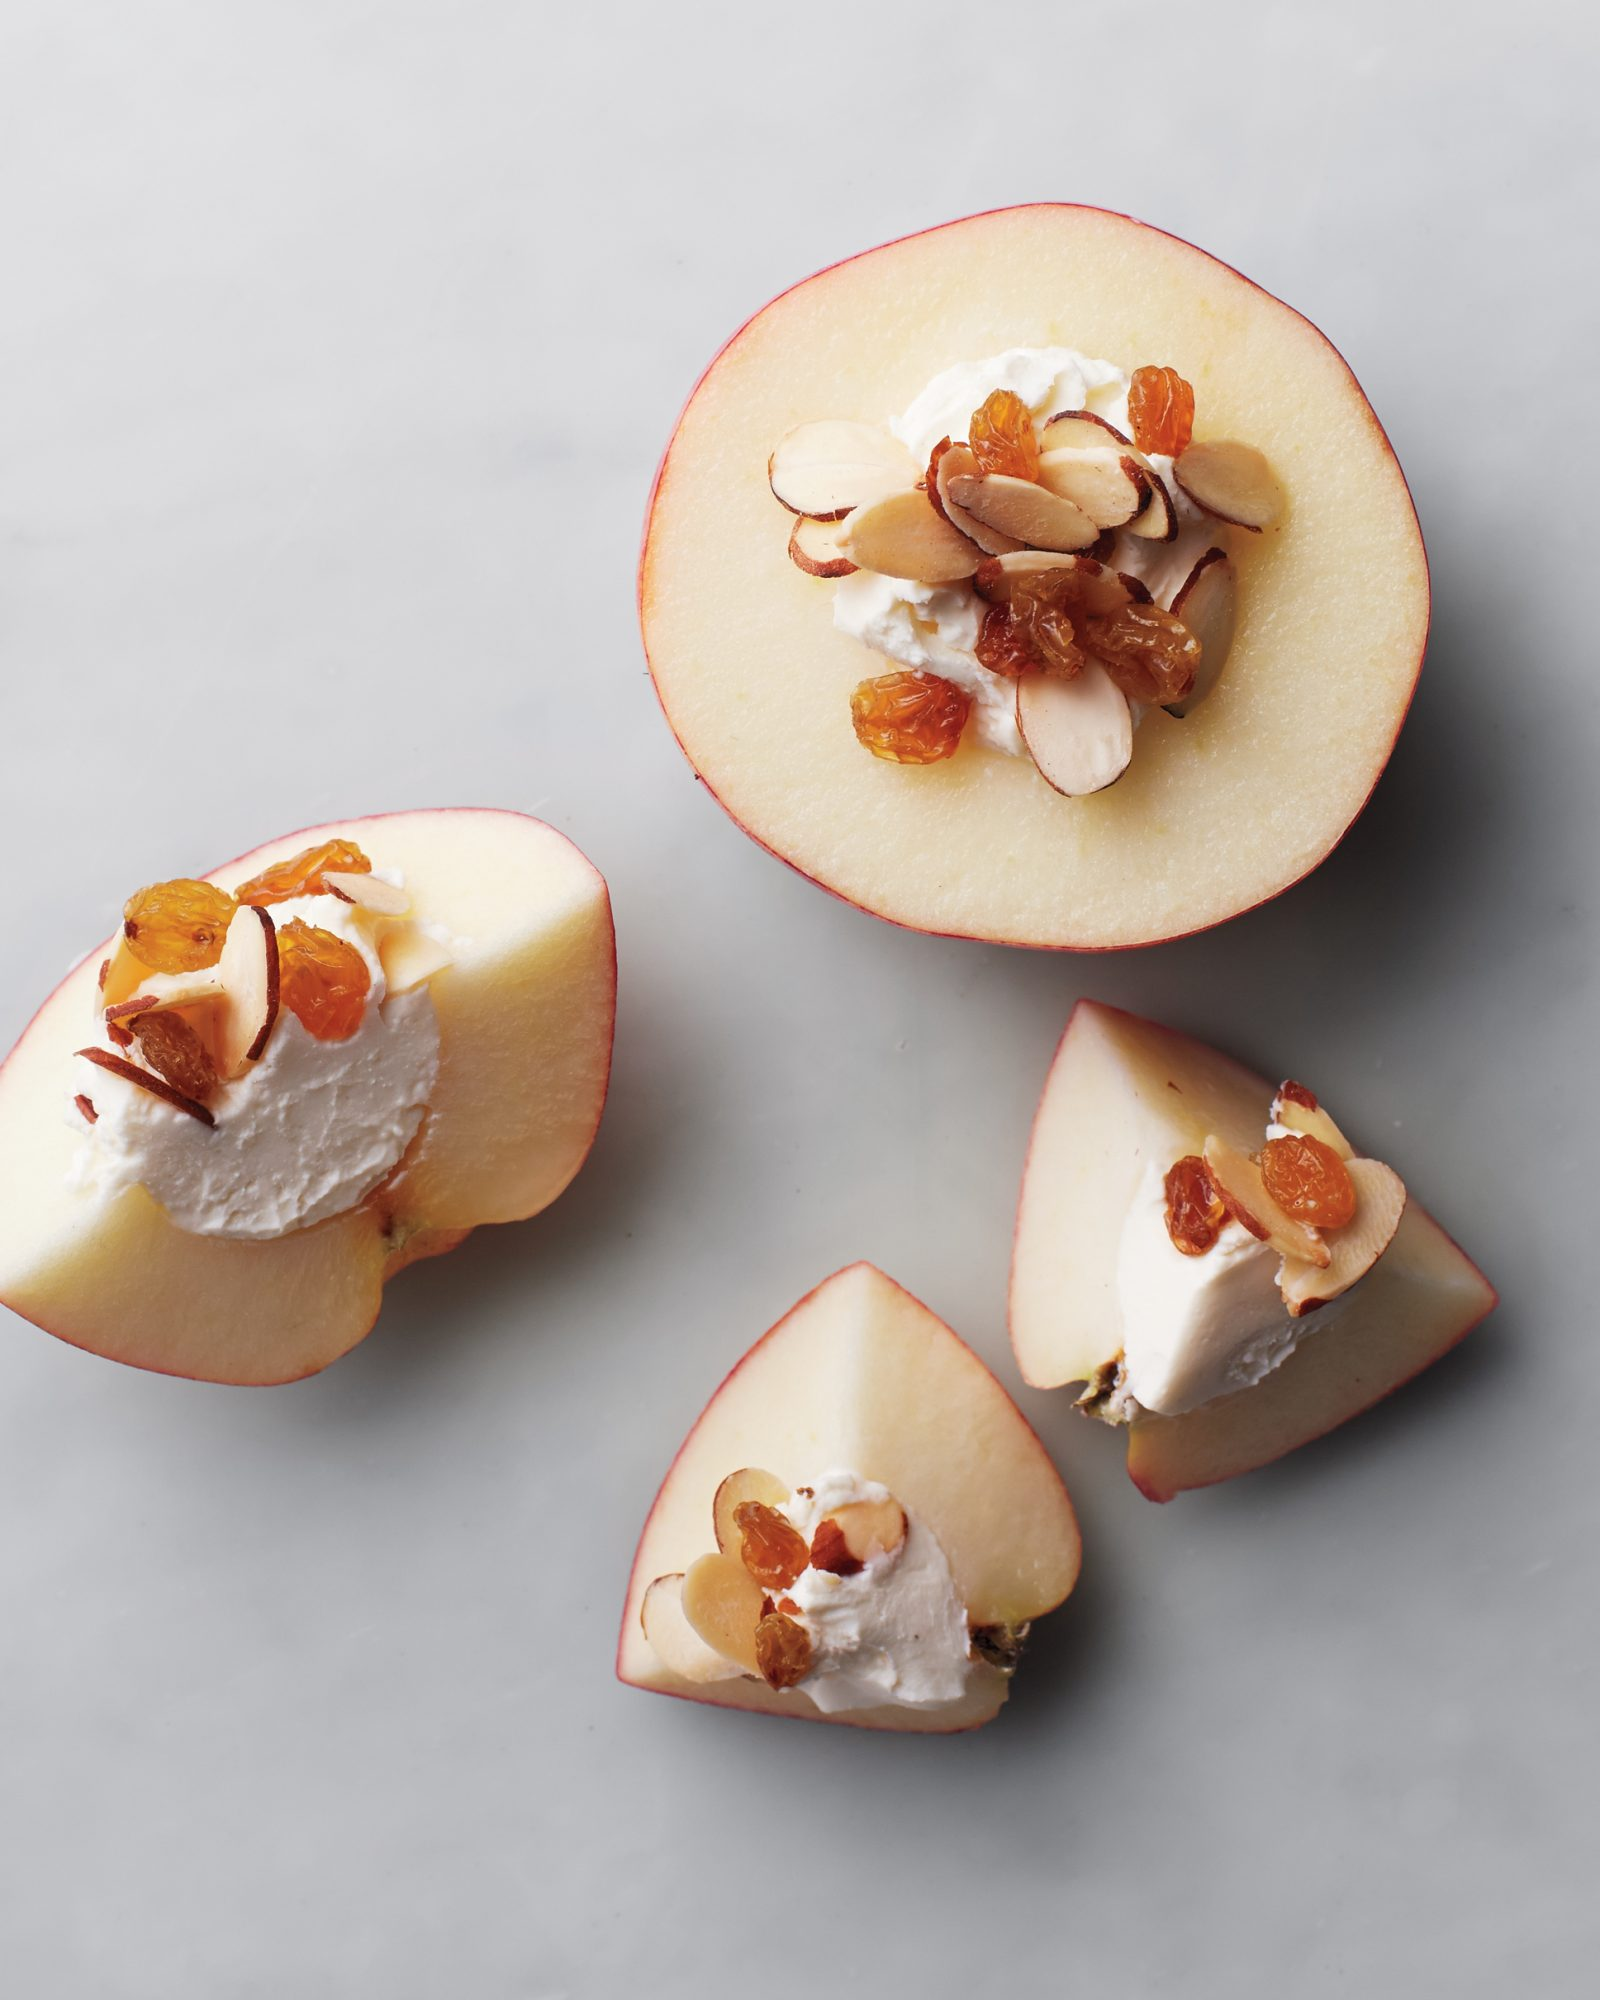 apples-and-cream-cheese-012-d111206.jpg